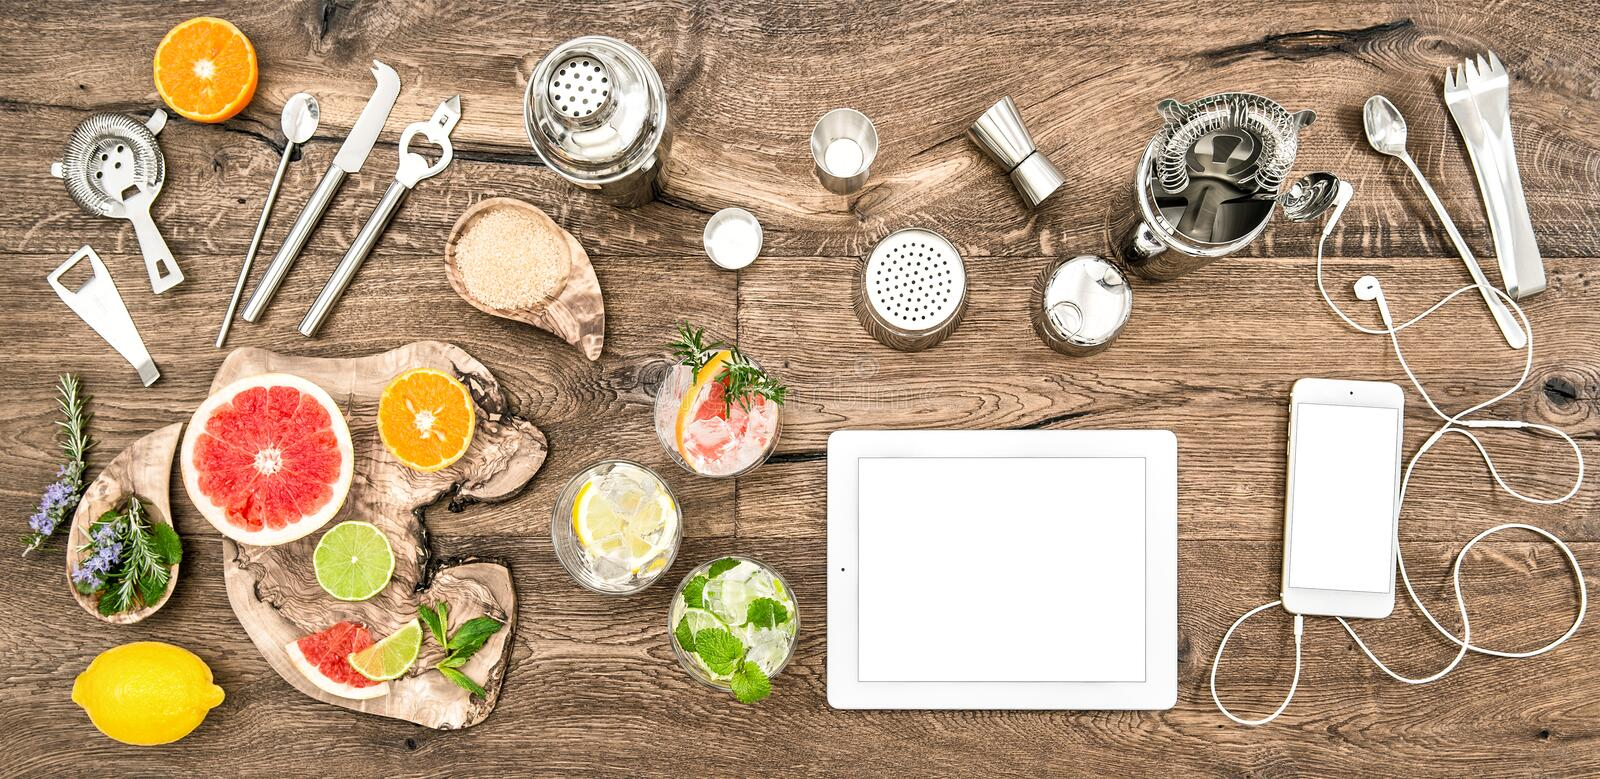 Food blogger desk bar tools accessories electronic devices. Food blogger desk with bar tools, accessories and electronic devices. Flat lay background royalty free stock image